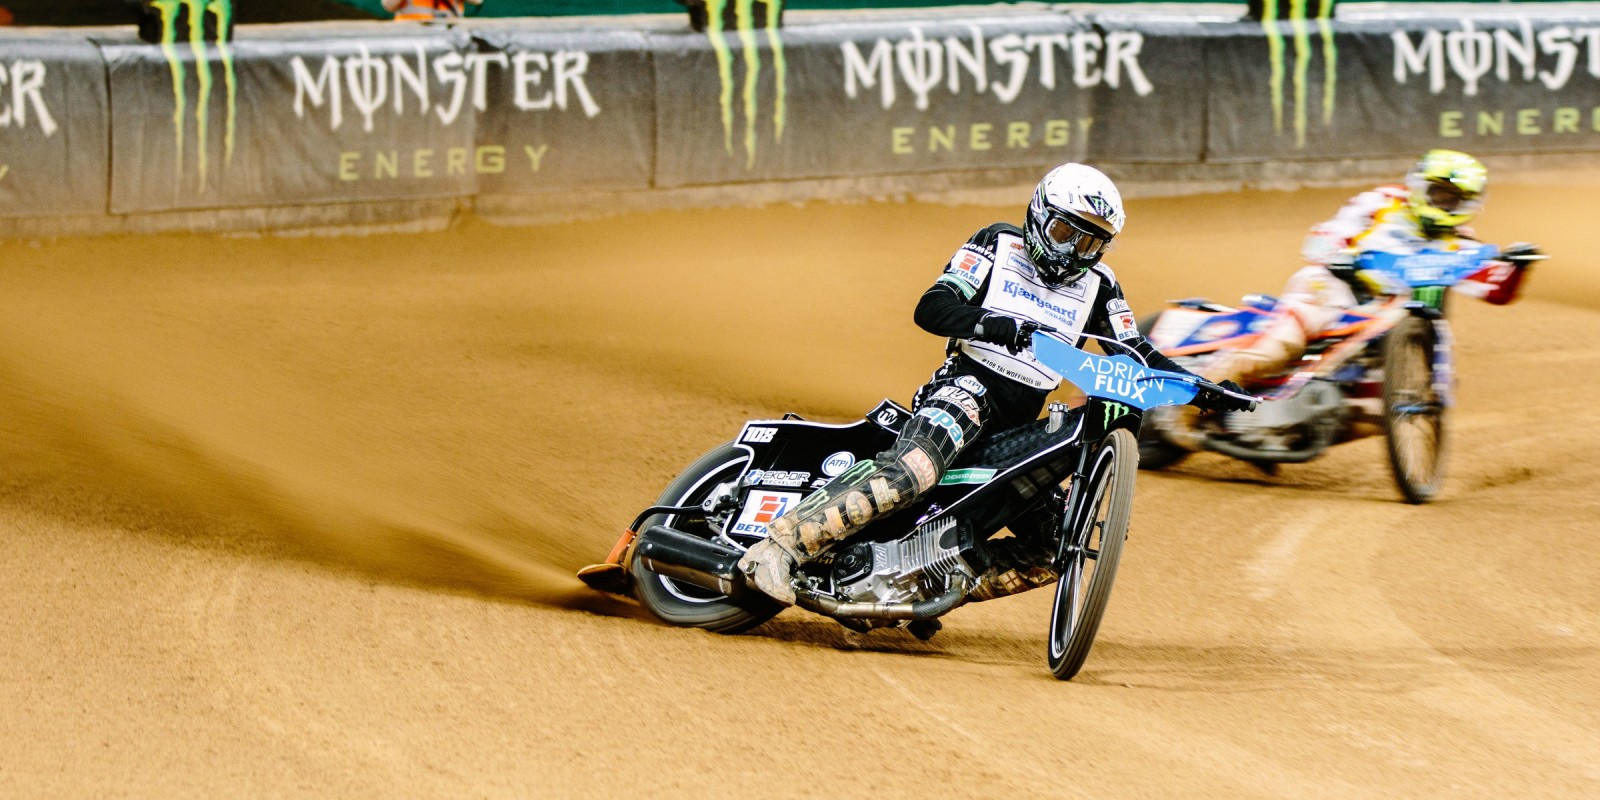 Images from the 2016 British Speedway Grand Prix